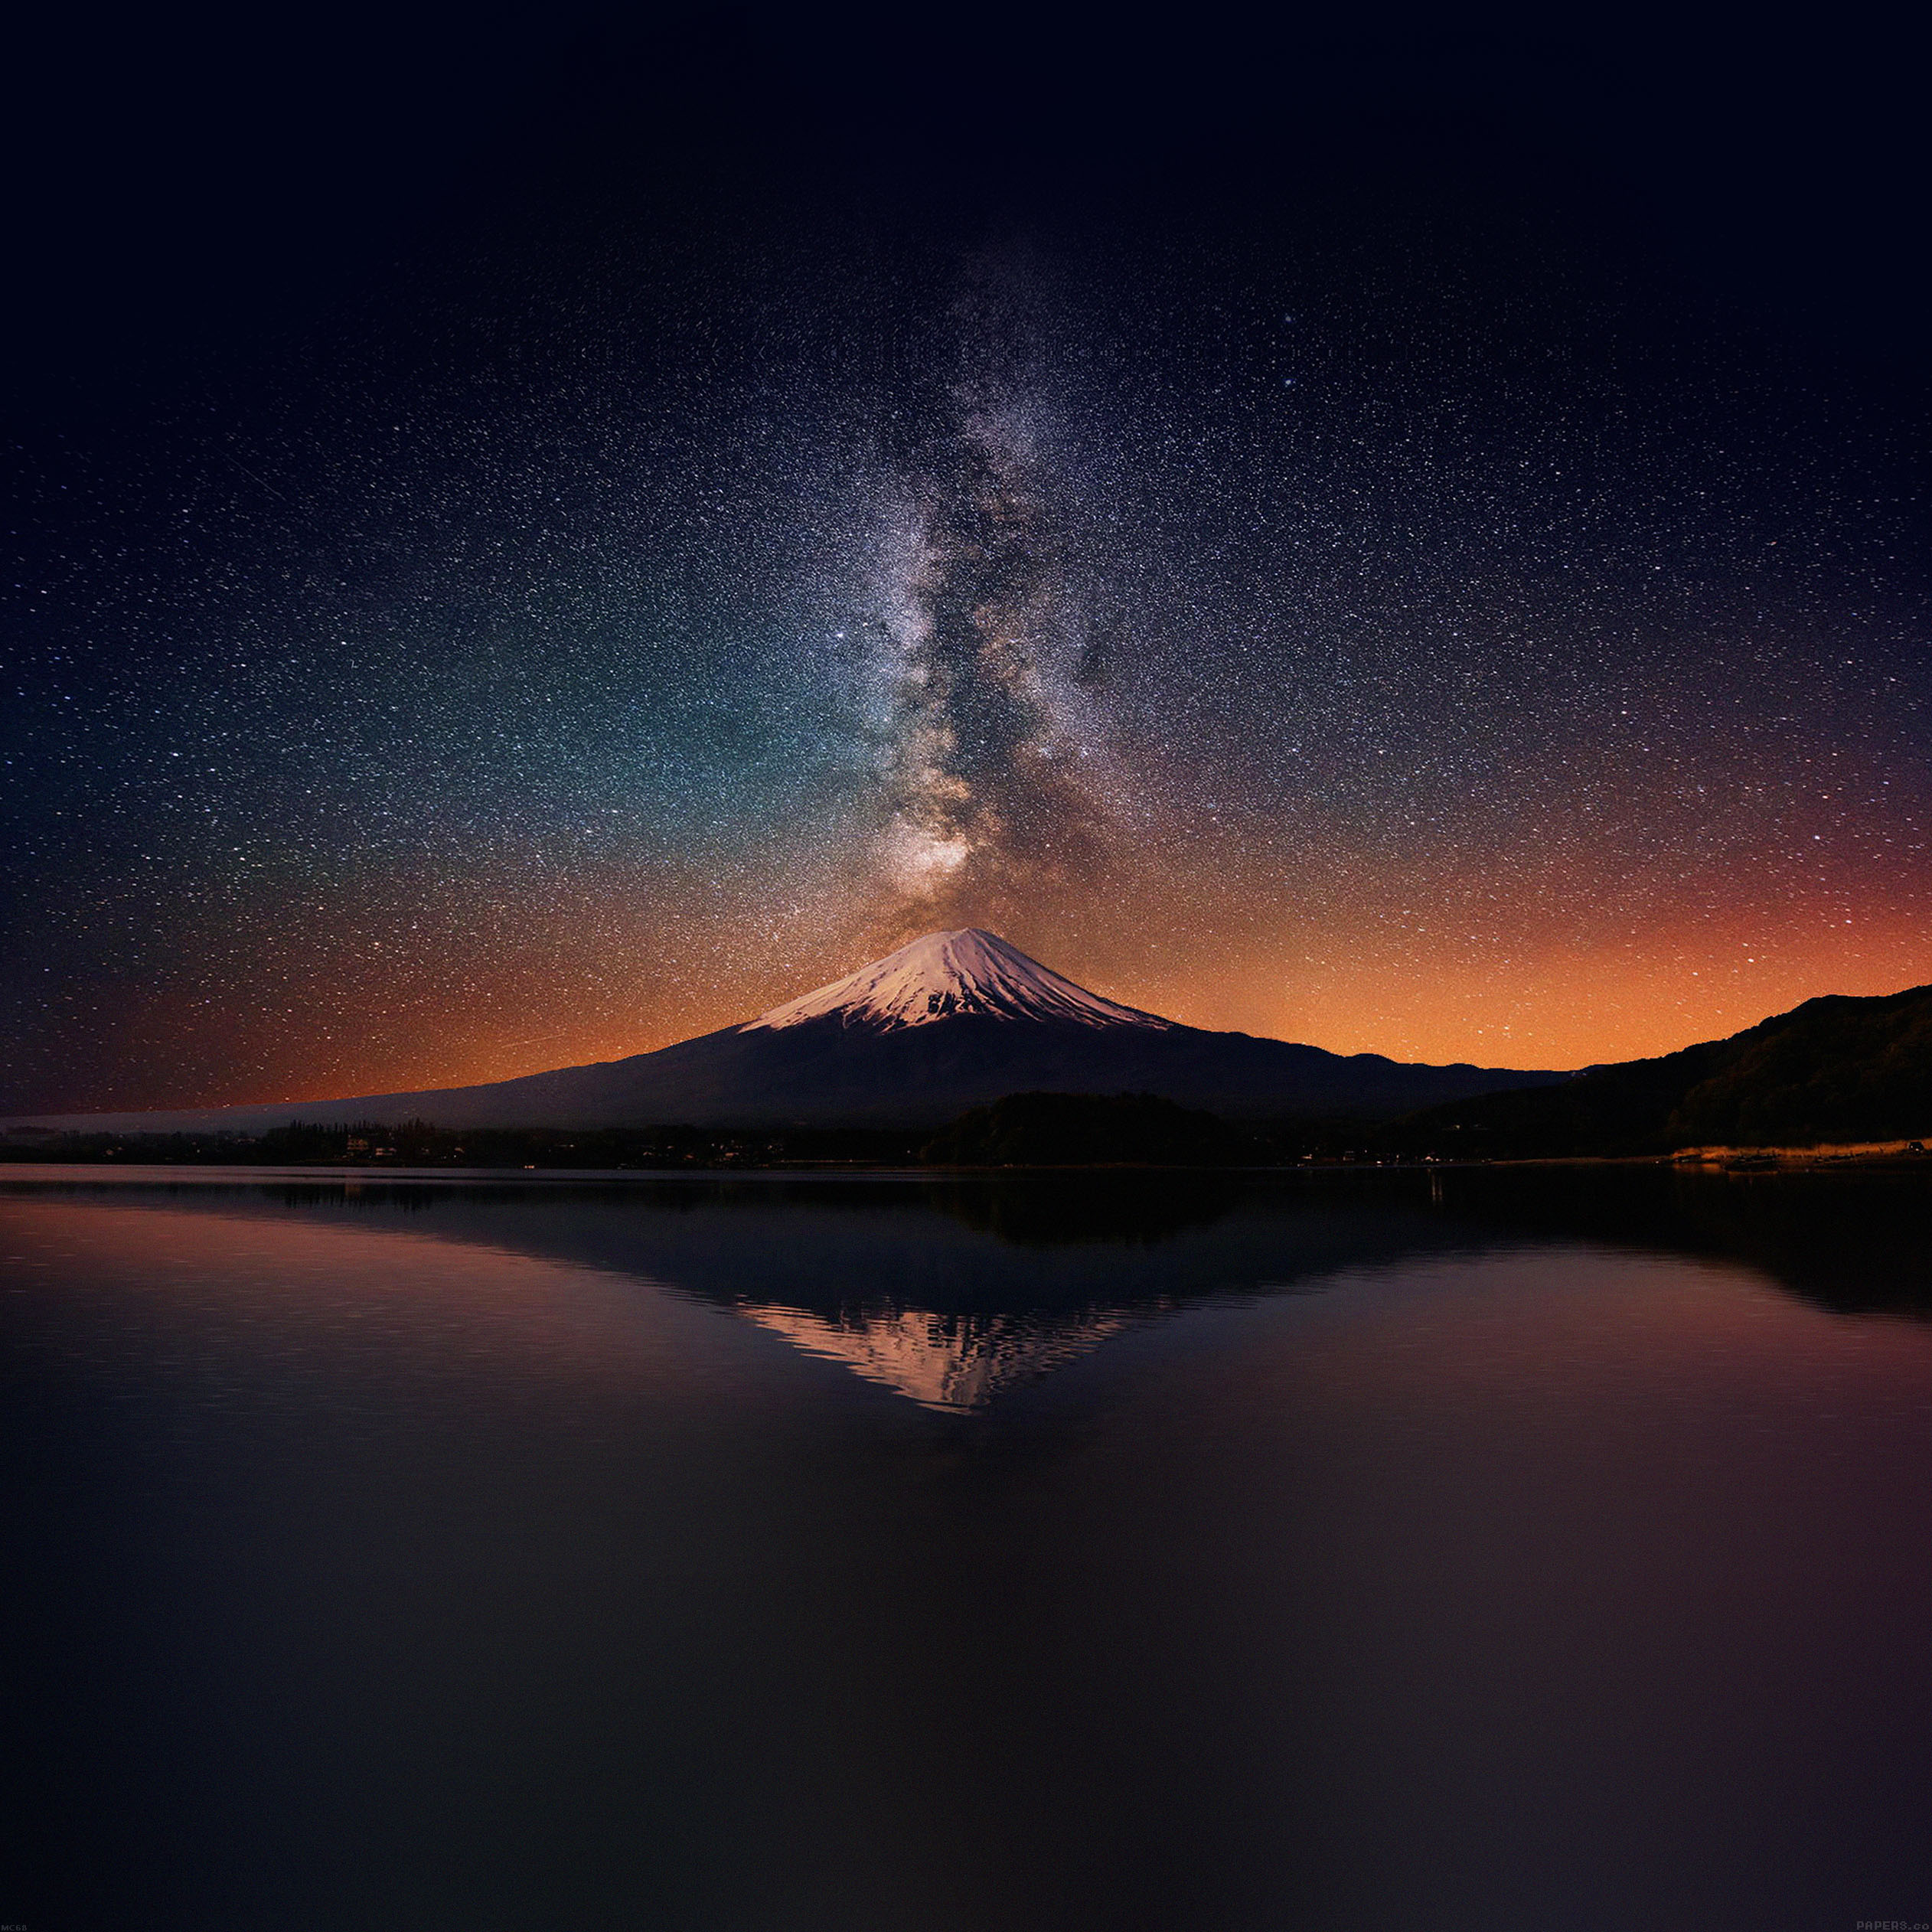 wallpaper-milky-way-on-mountain-fuji-sky-9-wallpaper